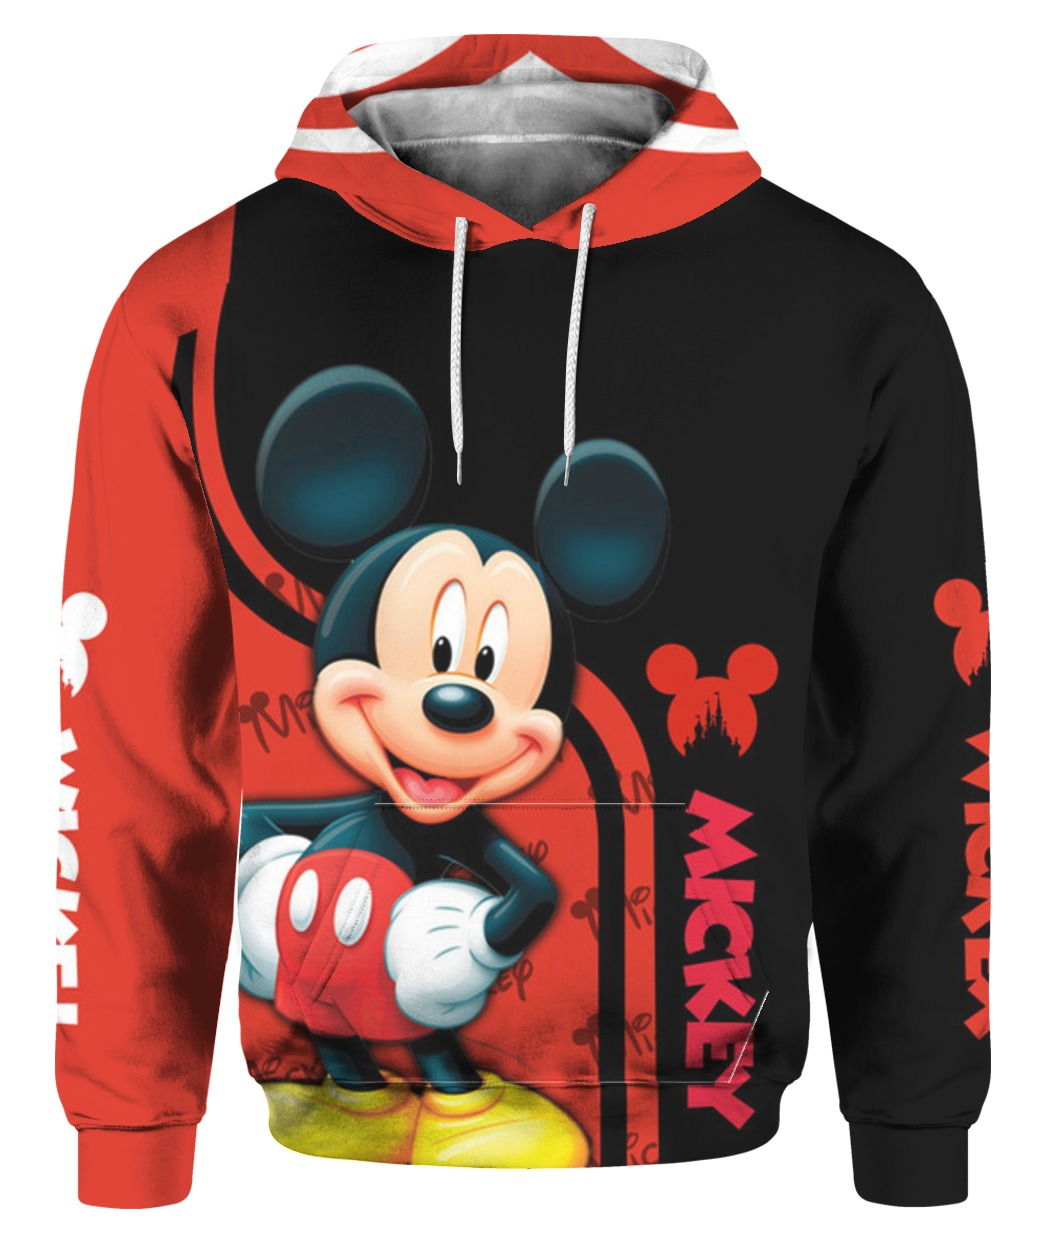 Mickey mouse all over print hoodie 1